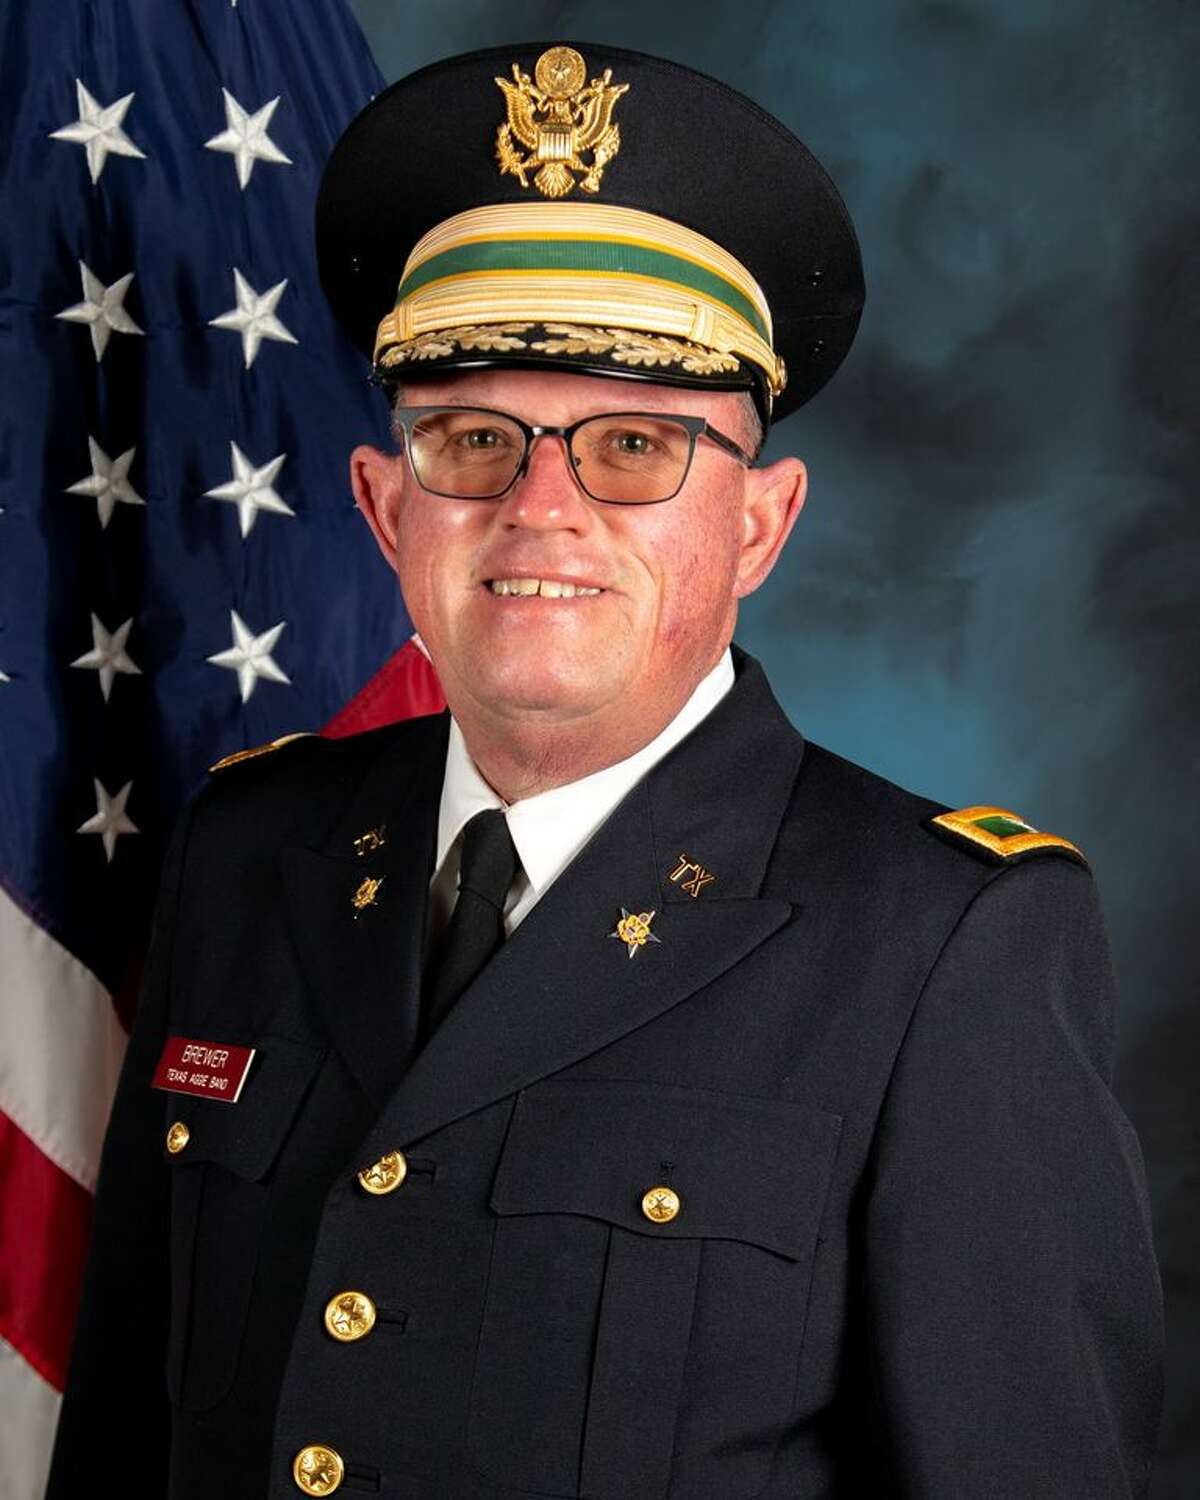 Col. Jay Brewer, the 'voice' of the Fightin' Texas Aggie Band, speaks Oct. 5 at a fundraiser for the Pasadena Area Aggie Moms Club. Visit pasadenaareaaggiemoms.org for details.